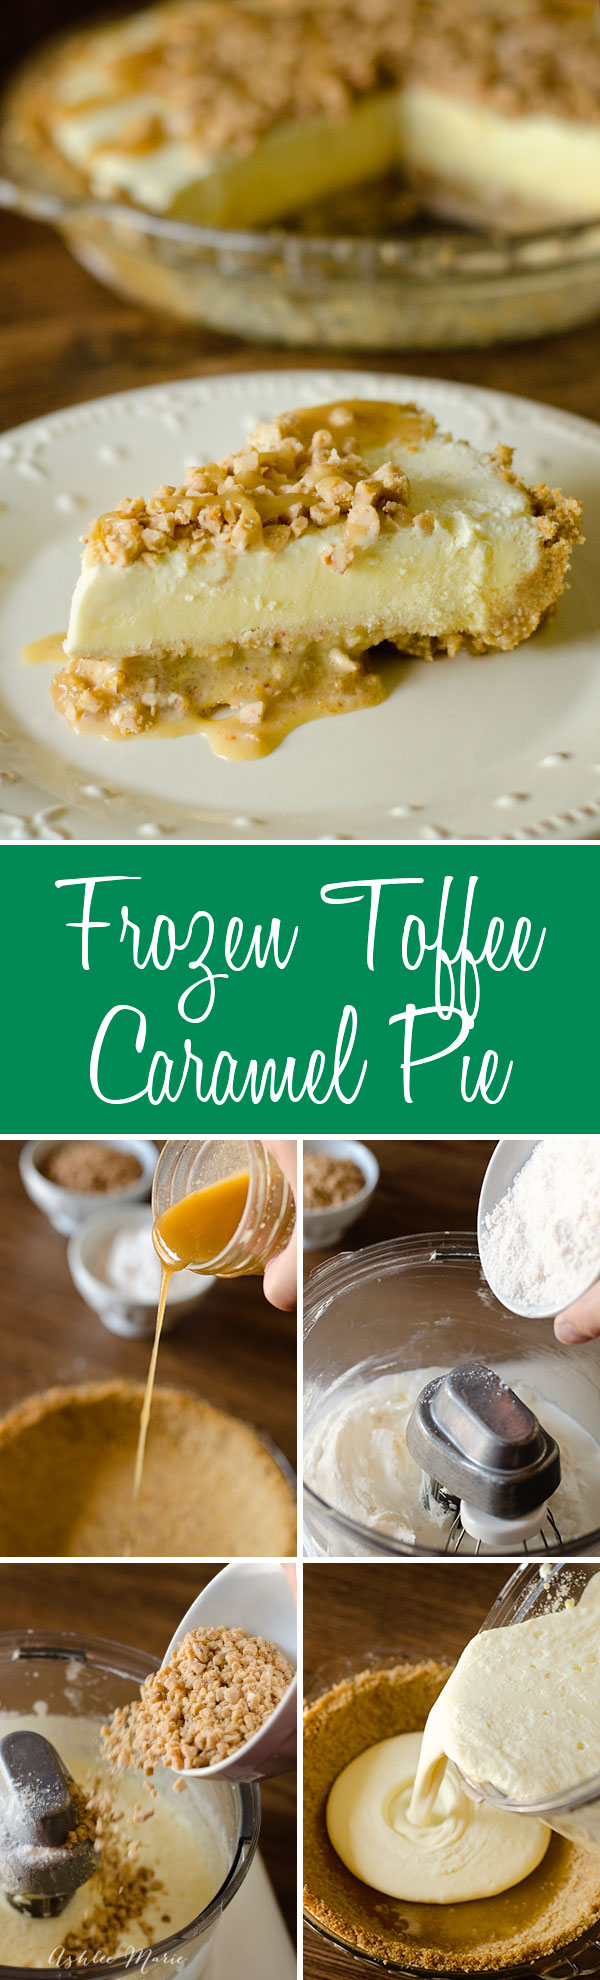 This frozen toffee caramel pie is easy to make and everyone loves it.  Perfect for a sweet, cool summer dessert.  You can easily change it to any other flavor combination as well.